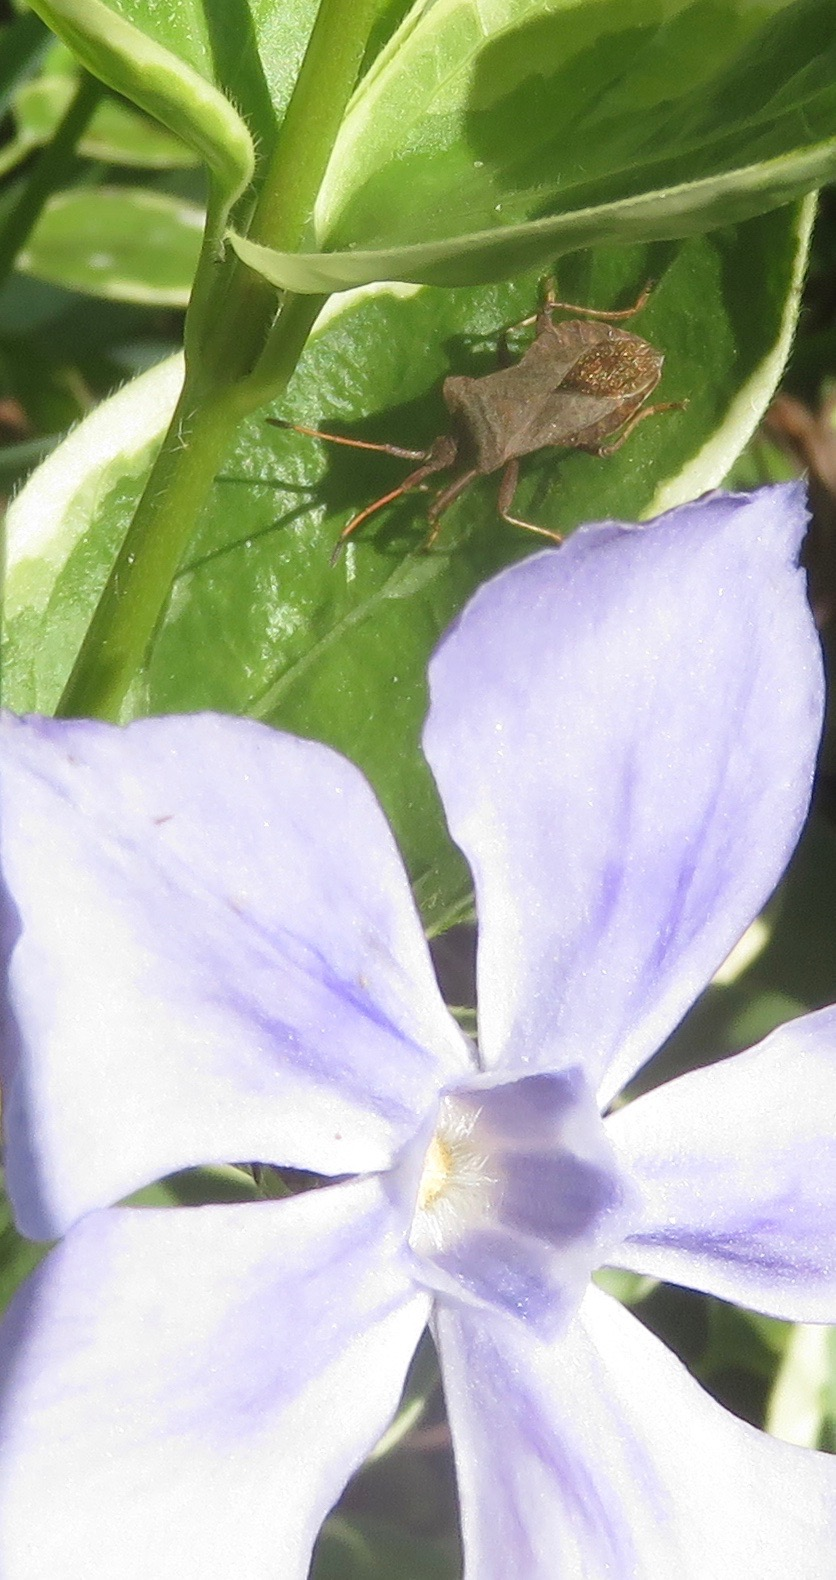 Shield bug on Vinca